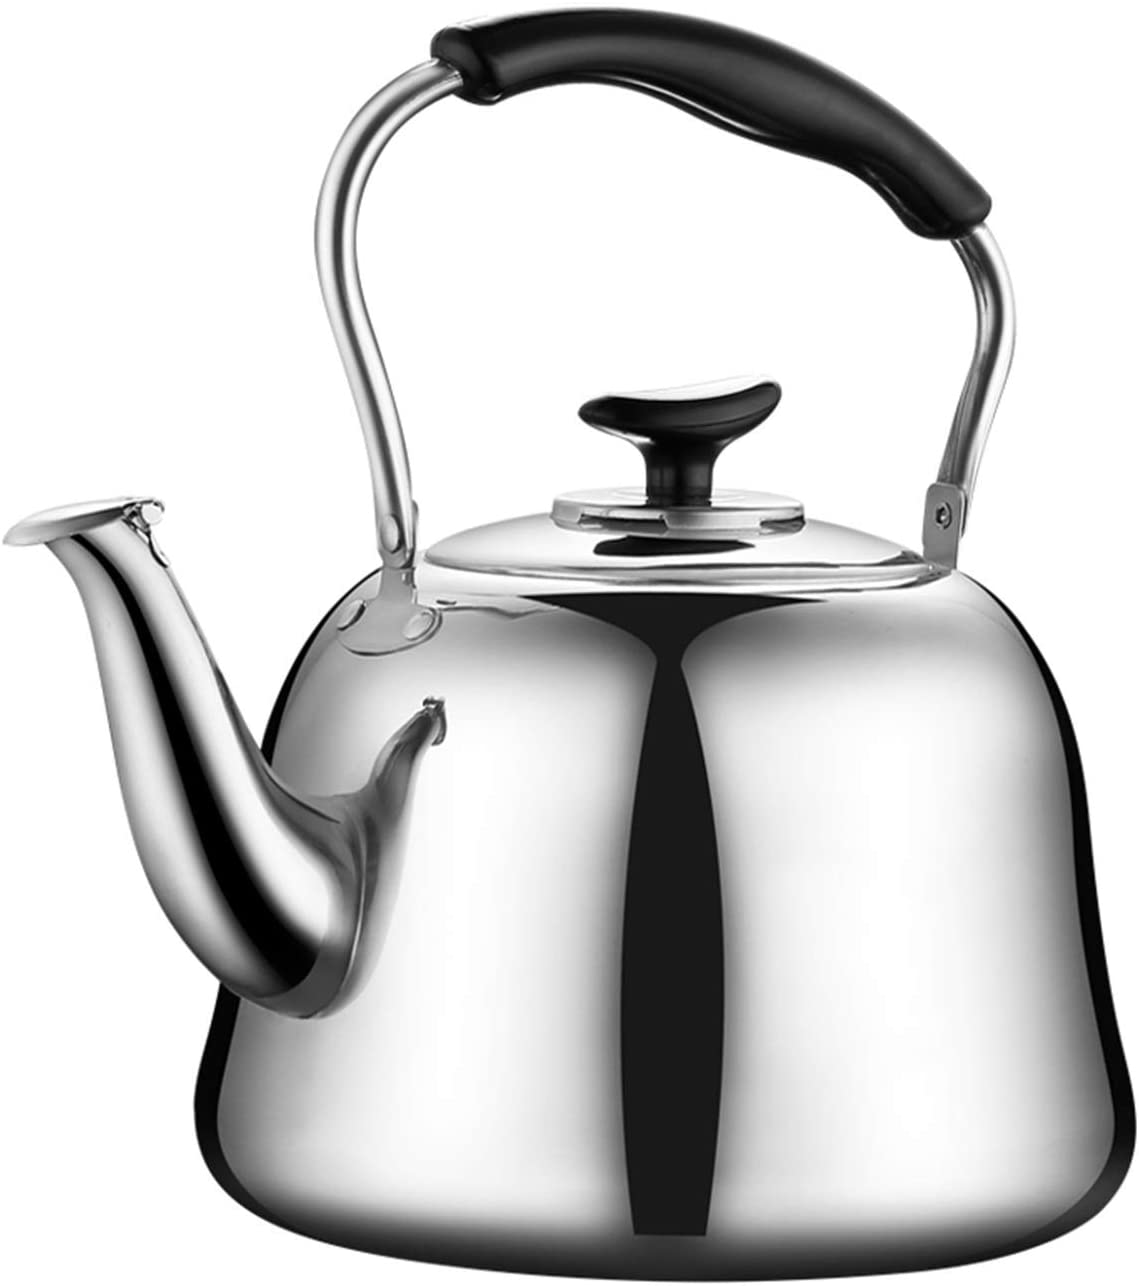 ZHM Stainless Steel Tea Kettle for 304 Stai Grade Stove top Food Super beauty product restock SEAL limited product quality